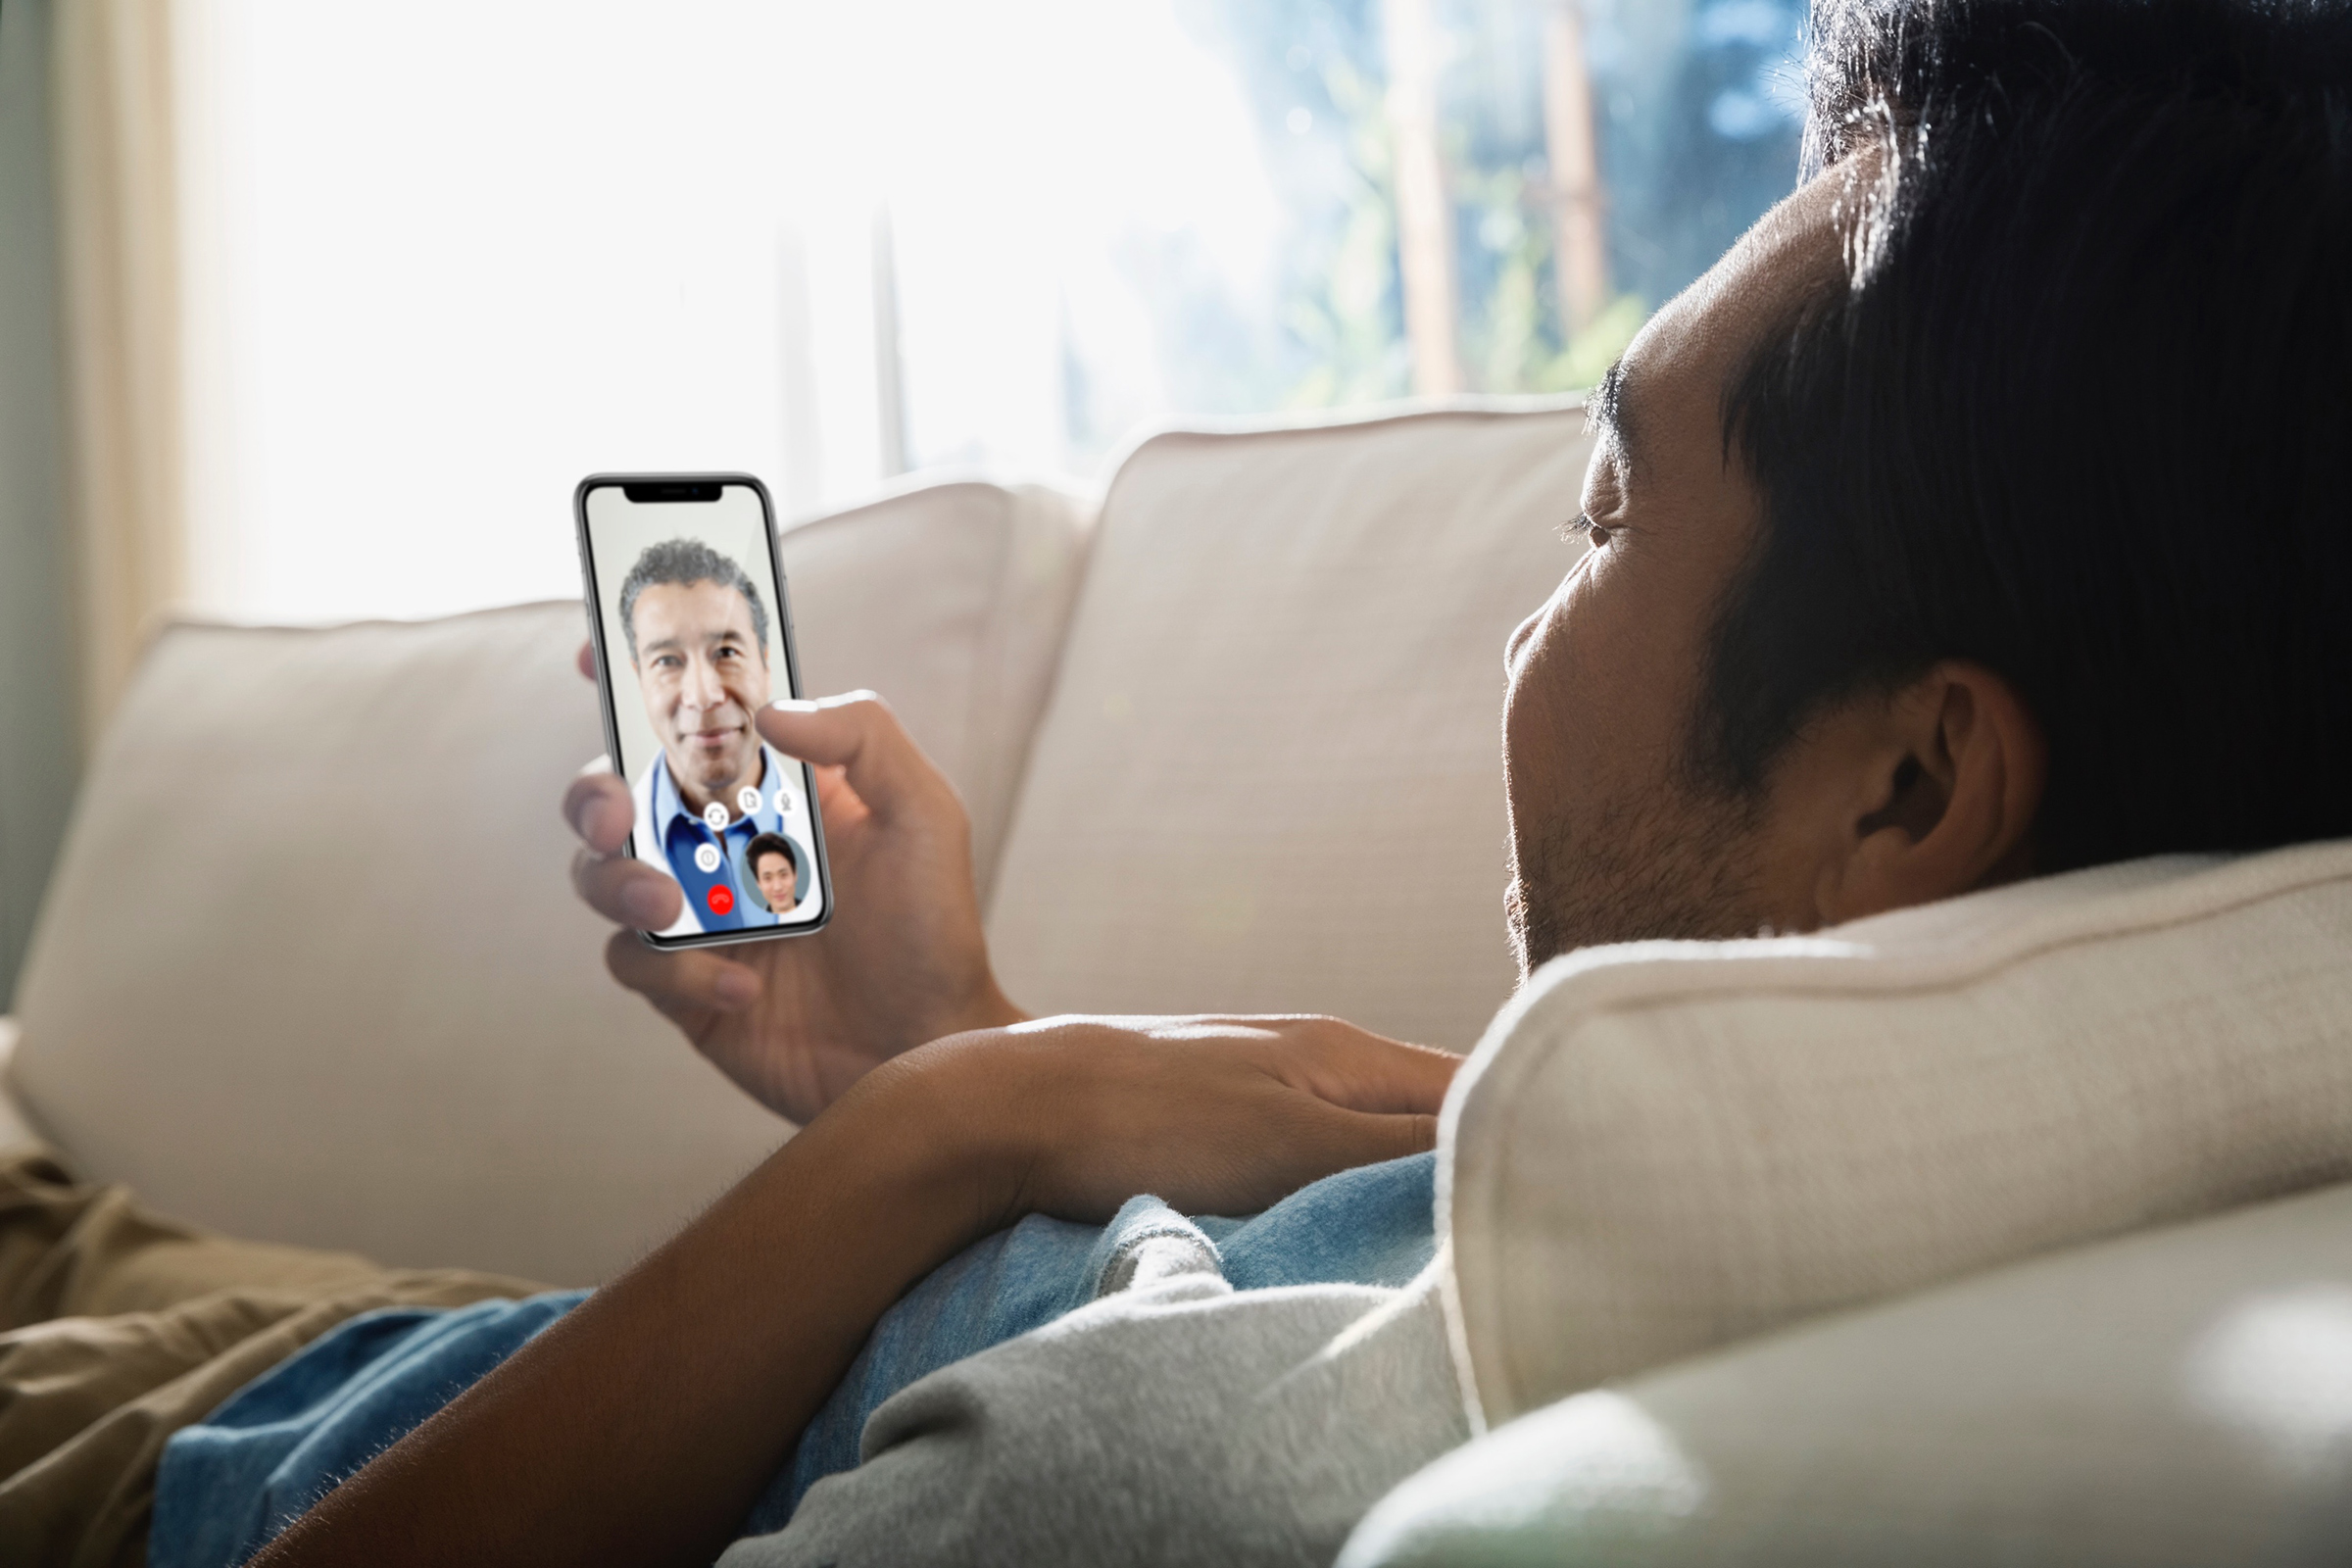 A patient visits with a doctor through the Teladoc app.